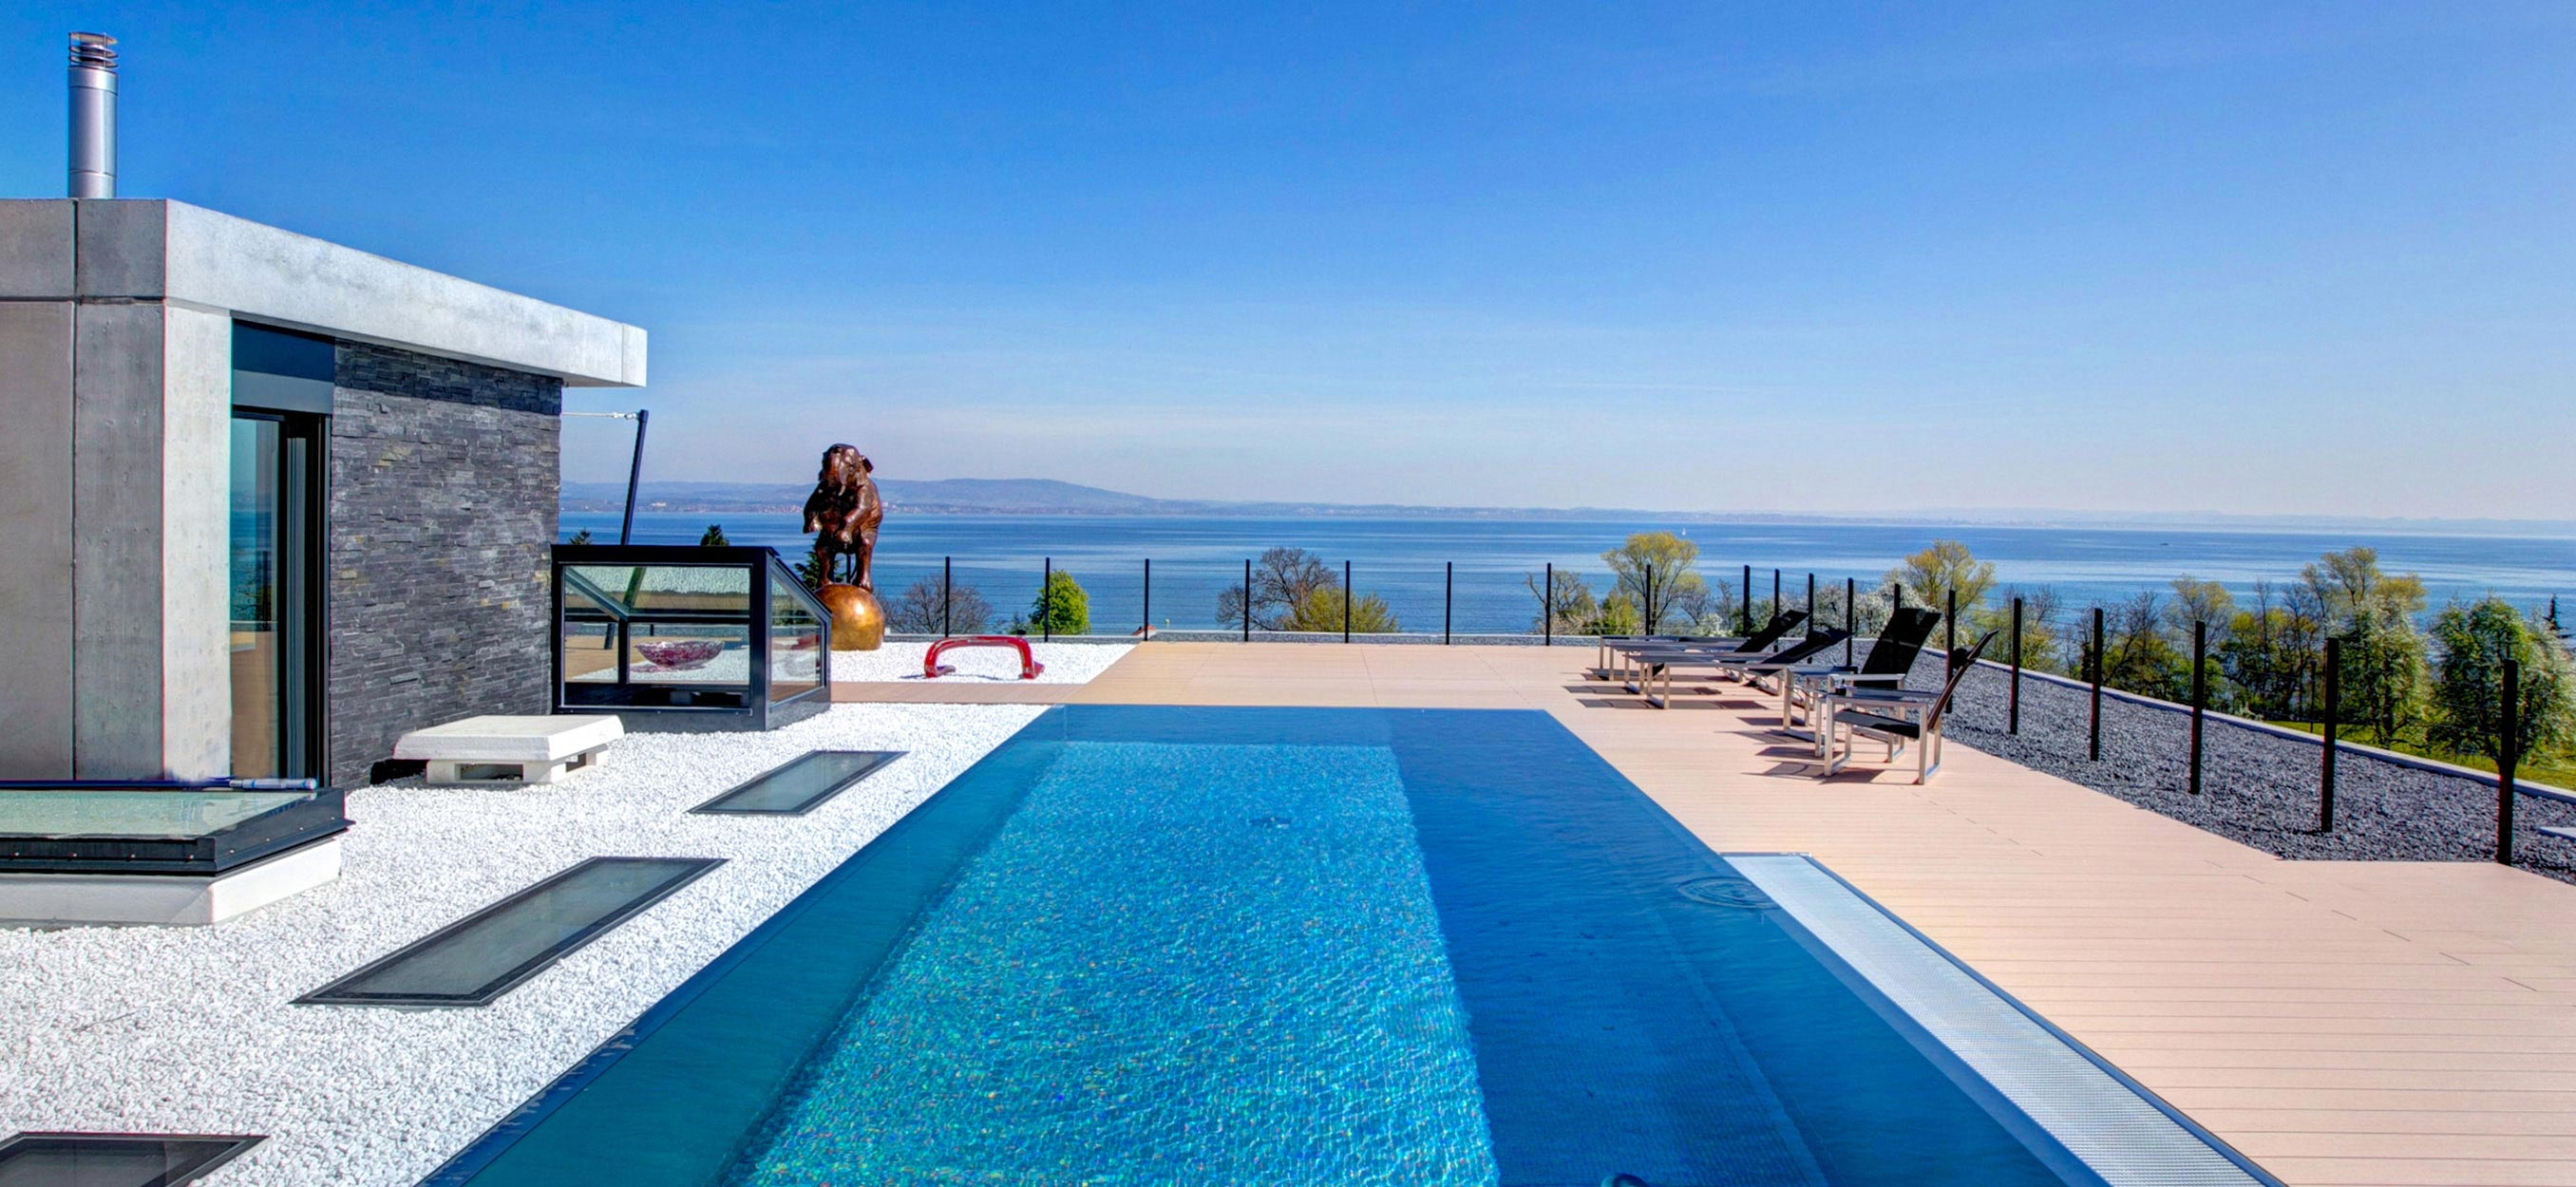 Pixroom Header Startbilder 02